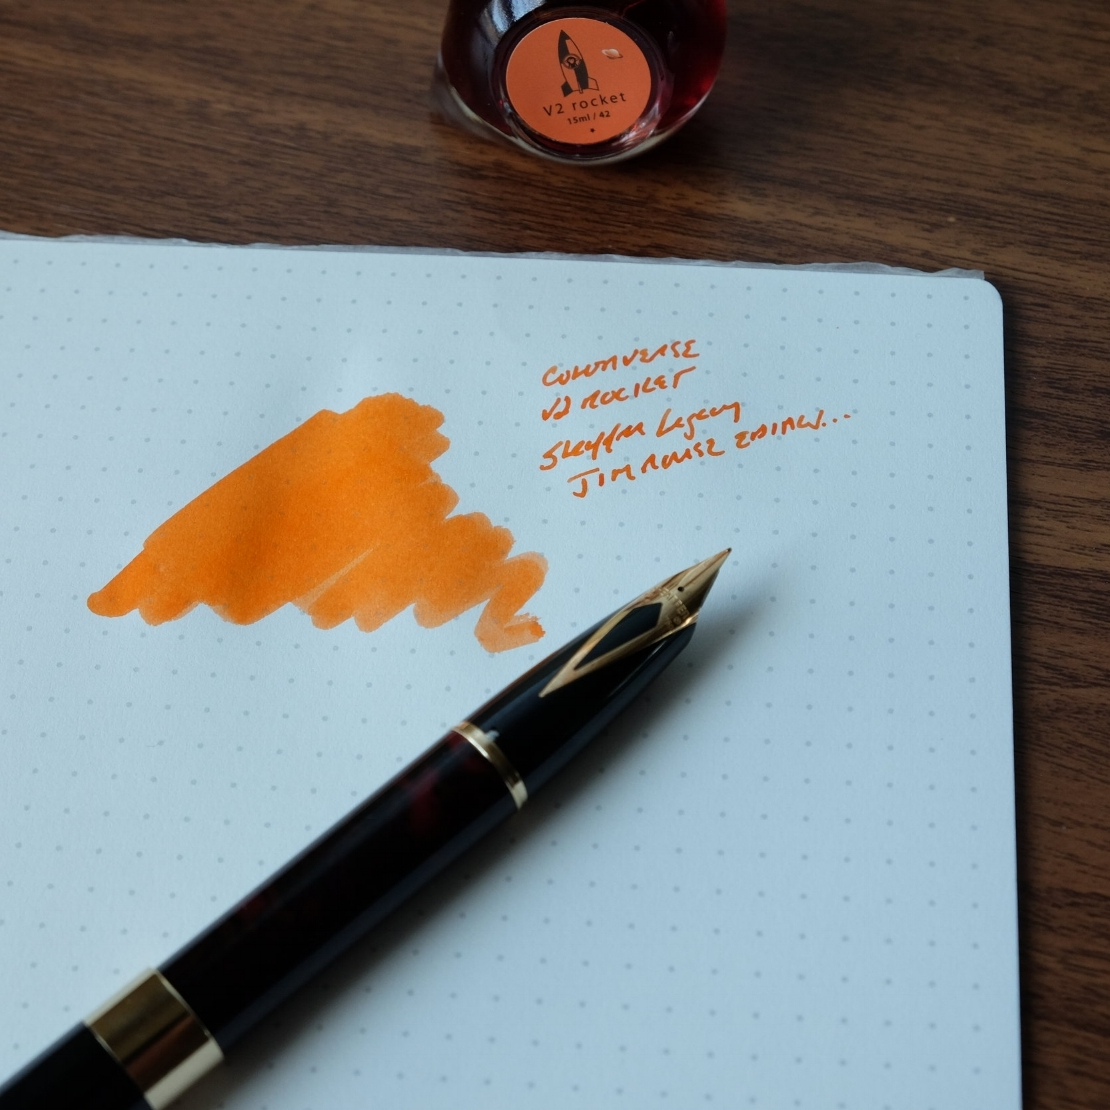 Colorverse V2 Rocket in my Jim Rouse Sheaffer Legacy.